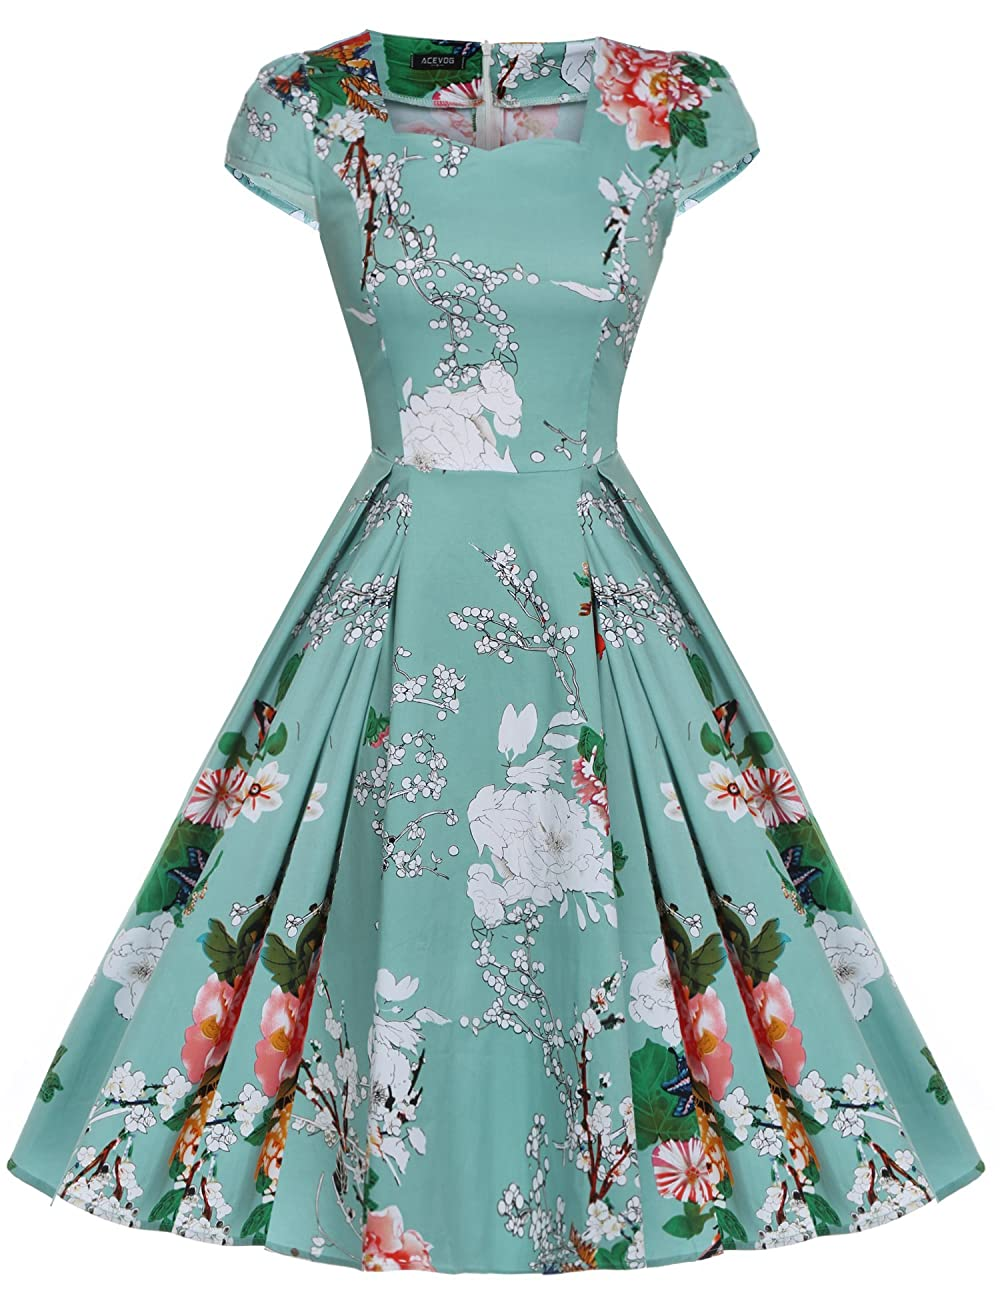 ACEVOG Women's 1950s Cap Sleeve Swing Vintage Floral Party Dresses Multi Colored 0